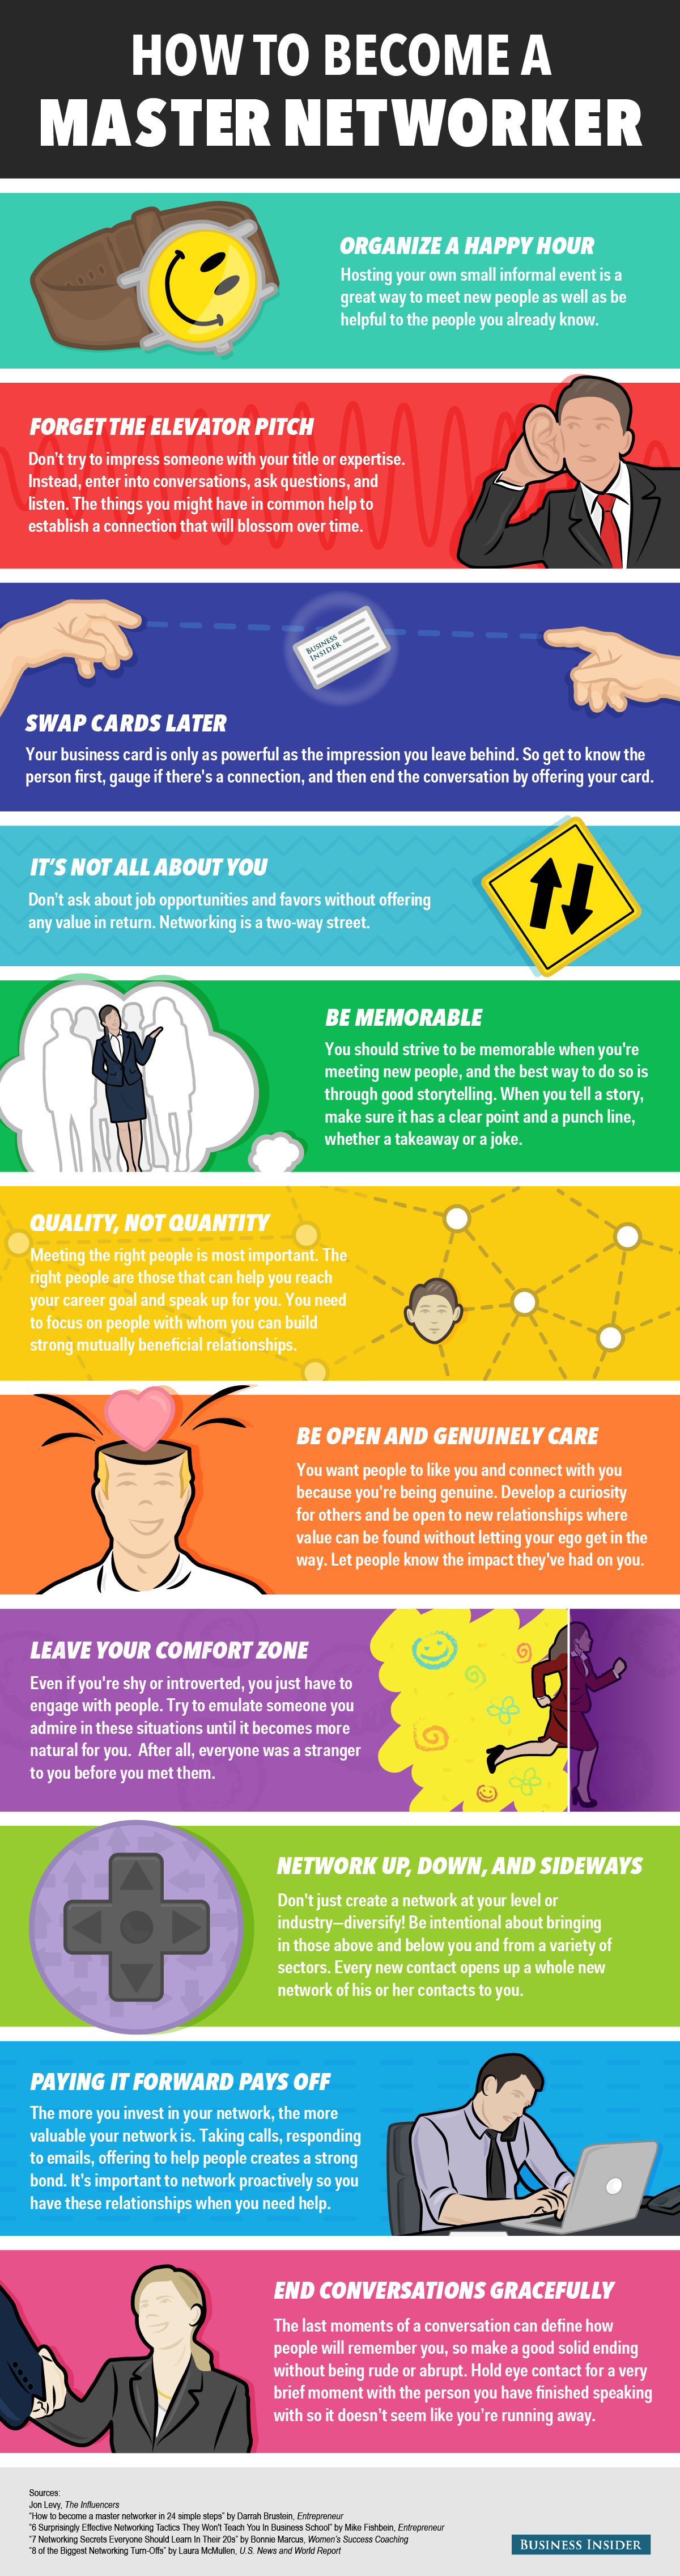 Infografia - 11 simple things you can do to become a master networker